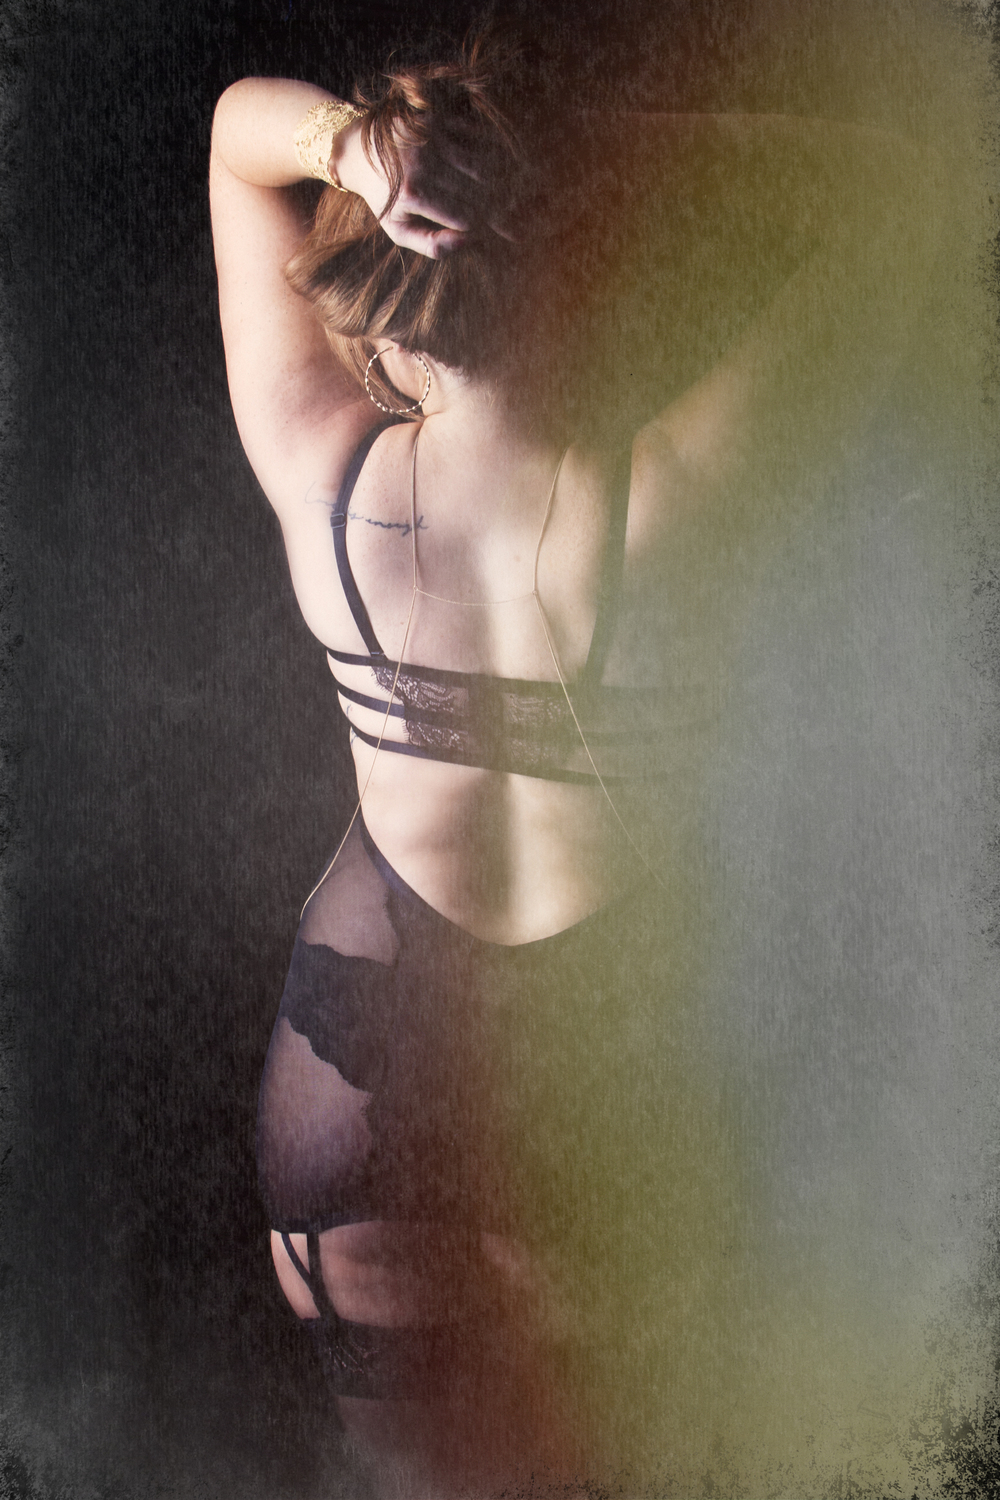 Affordable Boudoir photography Calgary (19).jpg